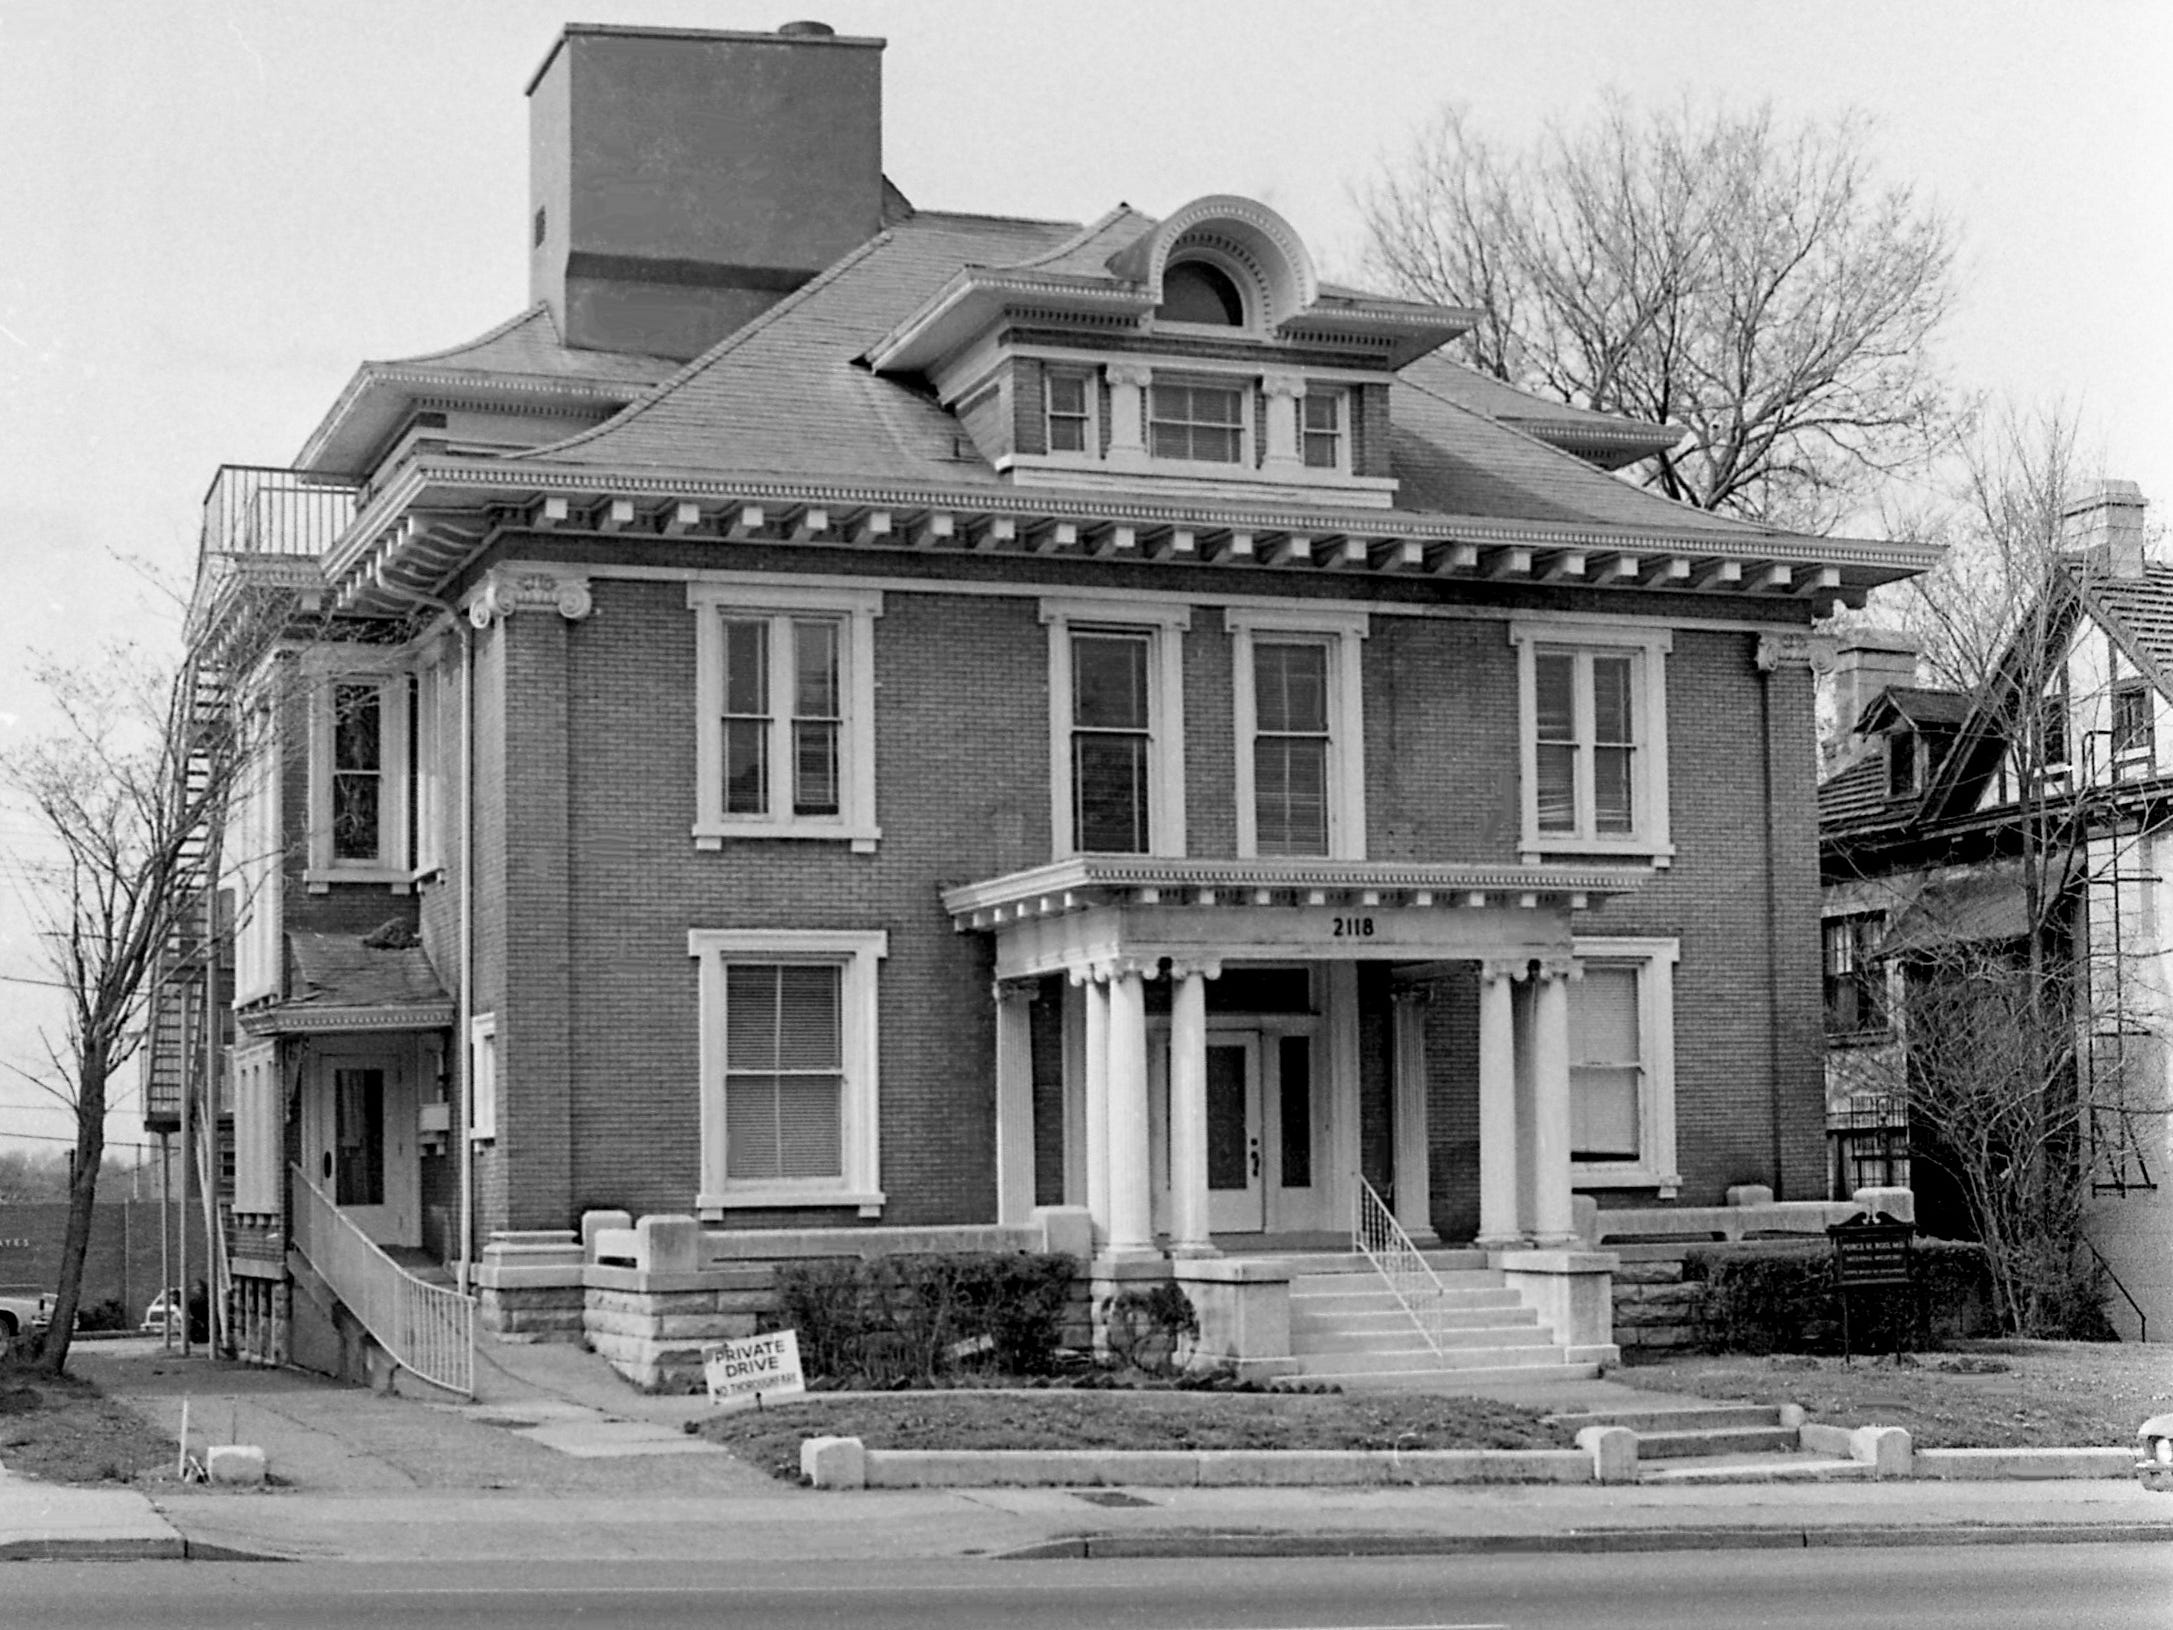 This building, located here at 2118 West End Ave. on April 2, 1979, served as the Governor's Mansion for 27 years, starting in 1923. The building may be torn down and a Popeye's Fried Chicken outlet built in its place after being recently purchased by James E. Rice.